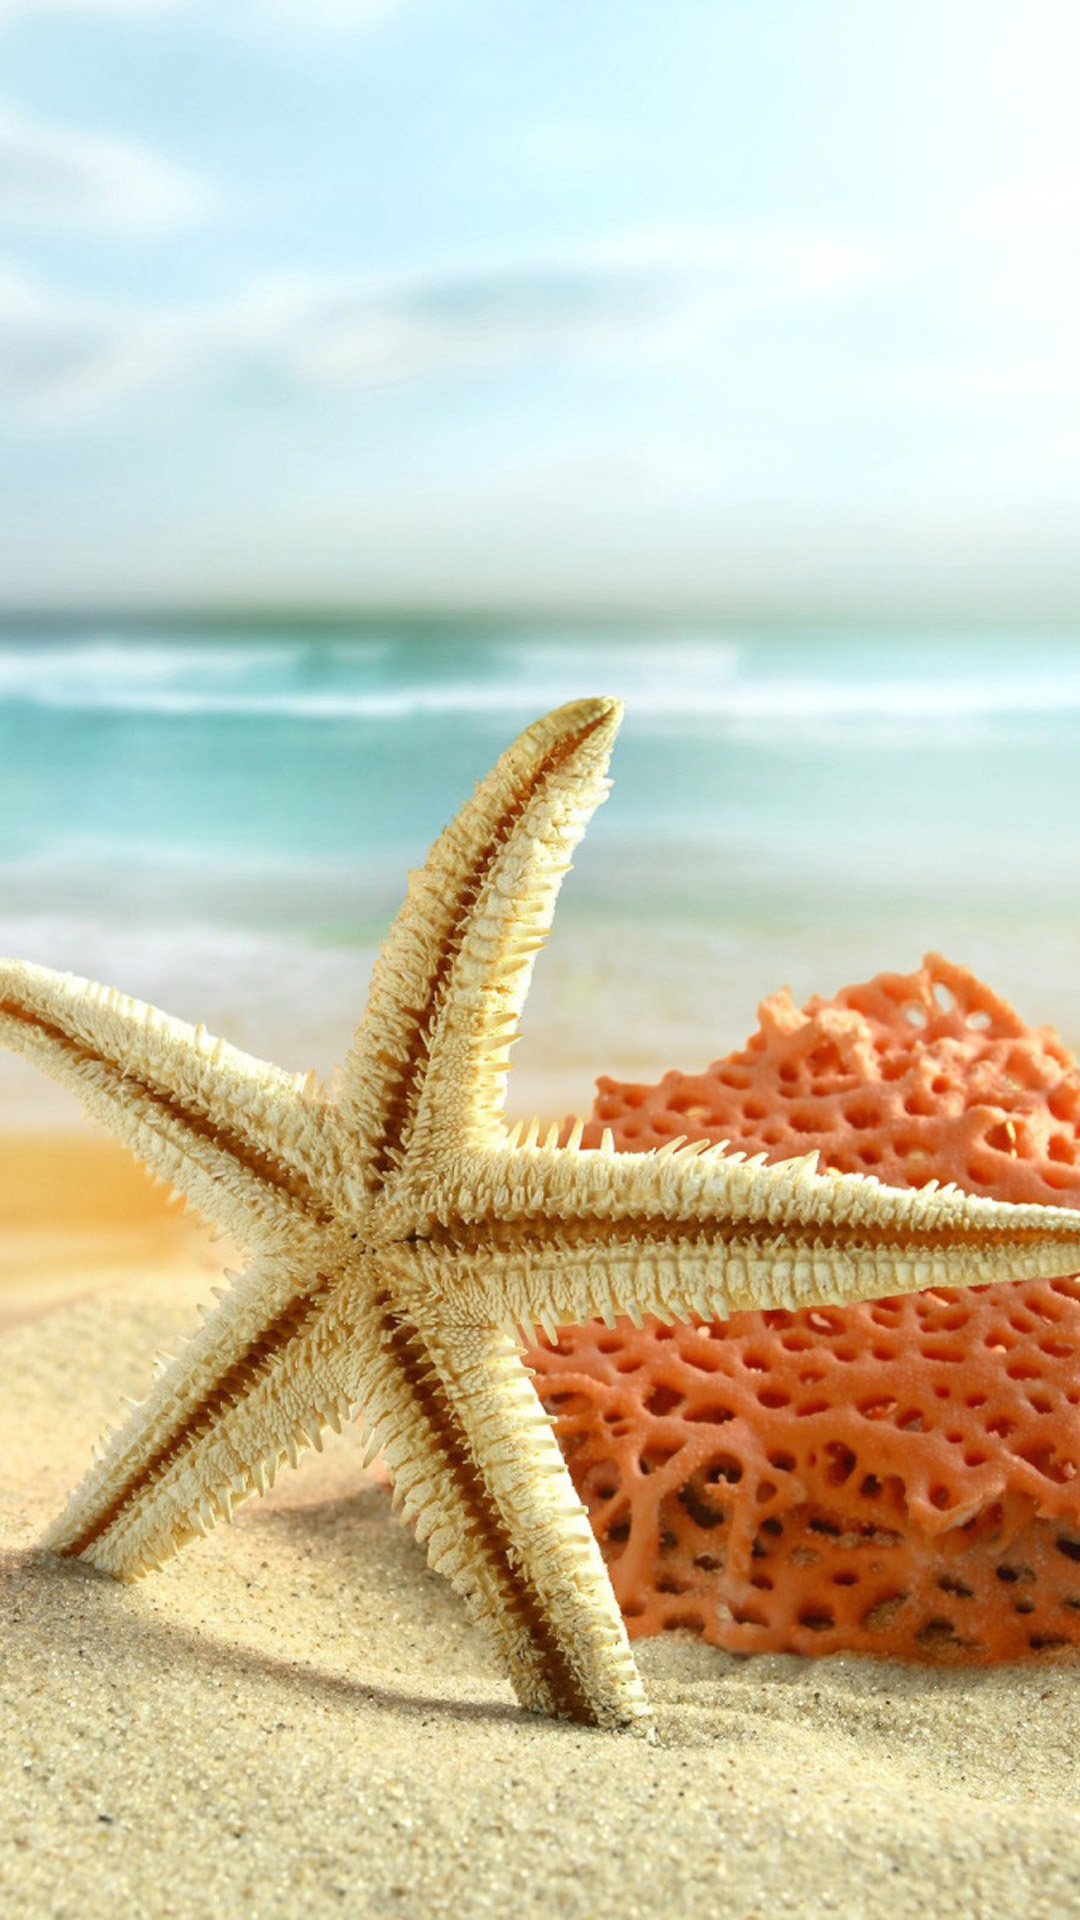 starfish beach toys android wallpaper - android hd wallpapers